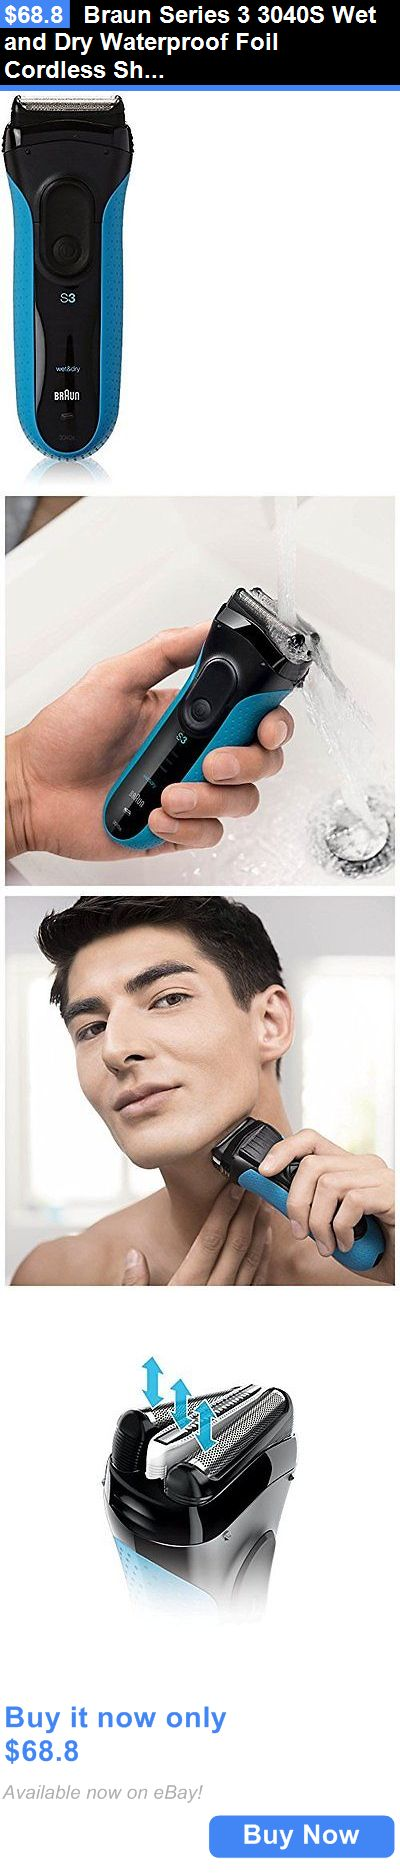 Mens Shavers: Braun Series 3 3040S Wet And Dry Waterproof Foil Cordless Shaver For Men BUY IT NOW ONLY: $68.8